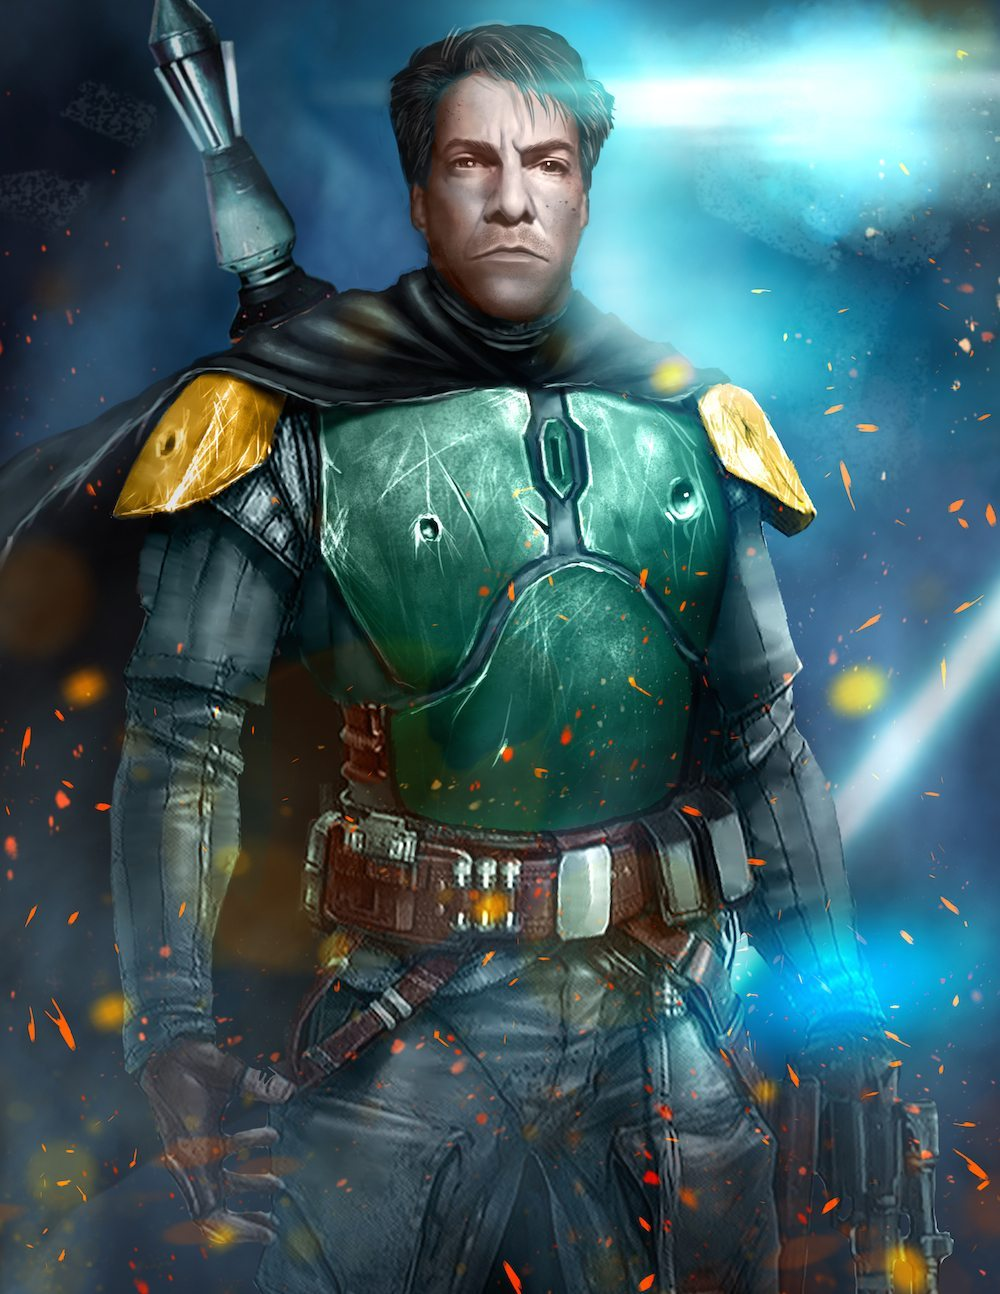 Howard Hartenbaum as Boba Fett by Danh Nguyen via ArtCorgi